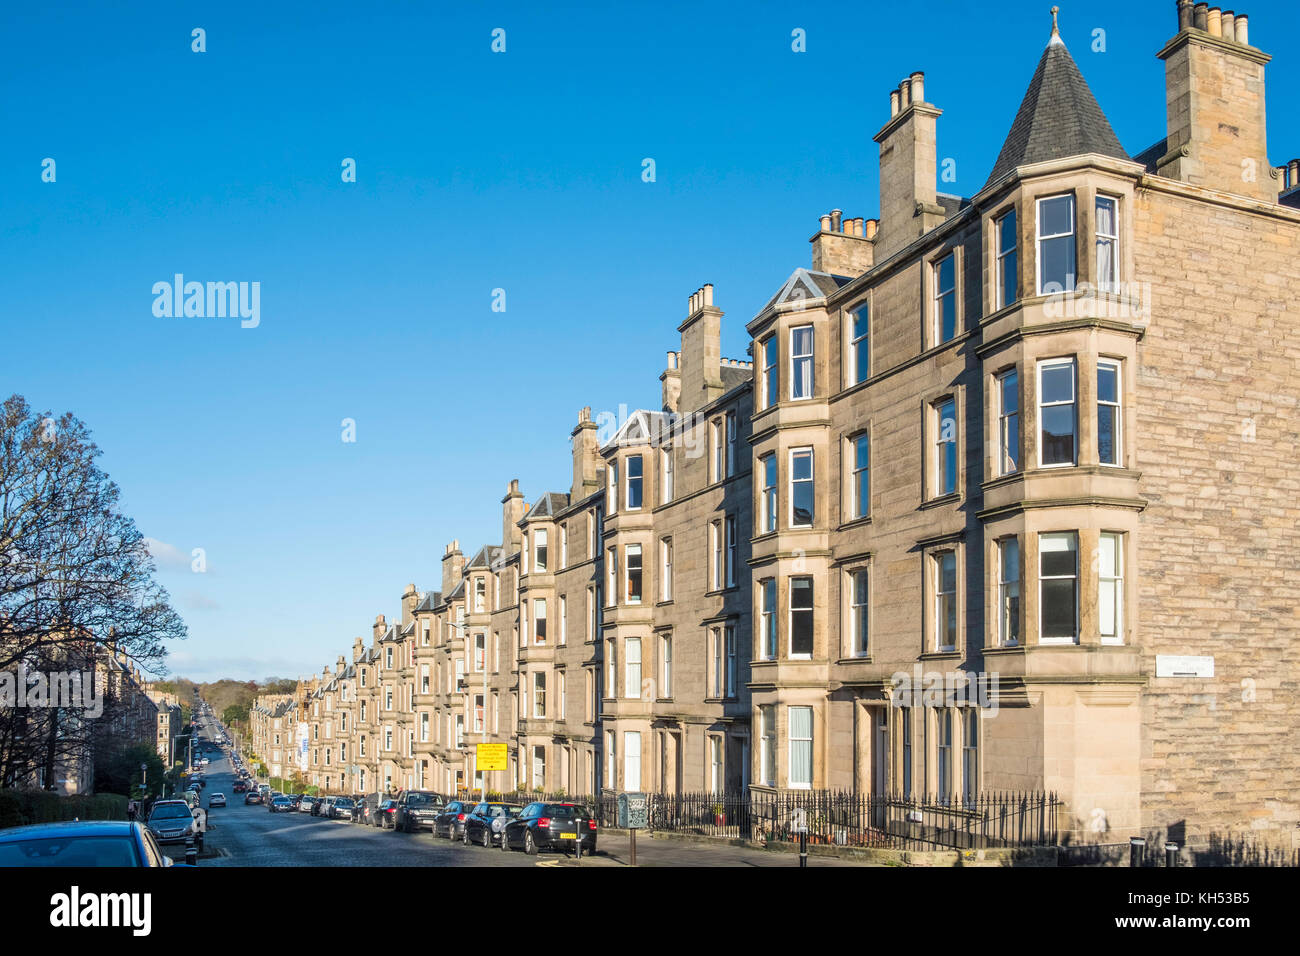 View of row of sandstone terraced apartments (tenements) on Comely Bank Avenue in Edinburgh, Scotland, United Kingdom - Stock Image